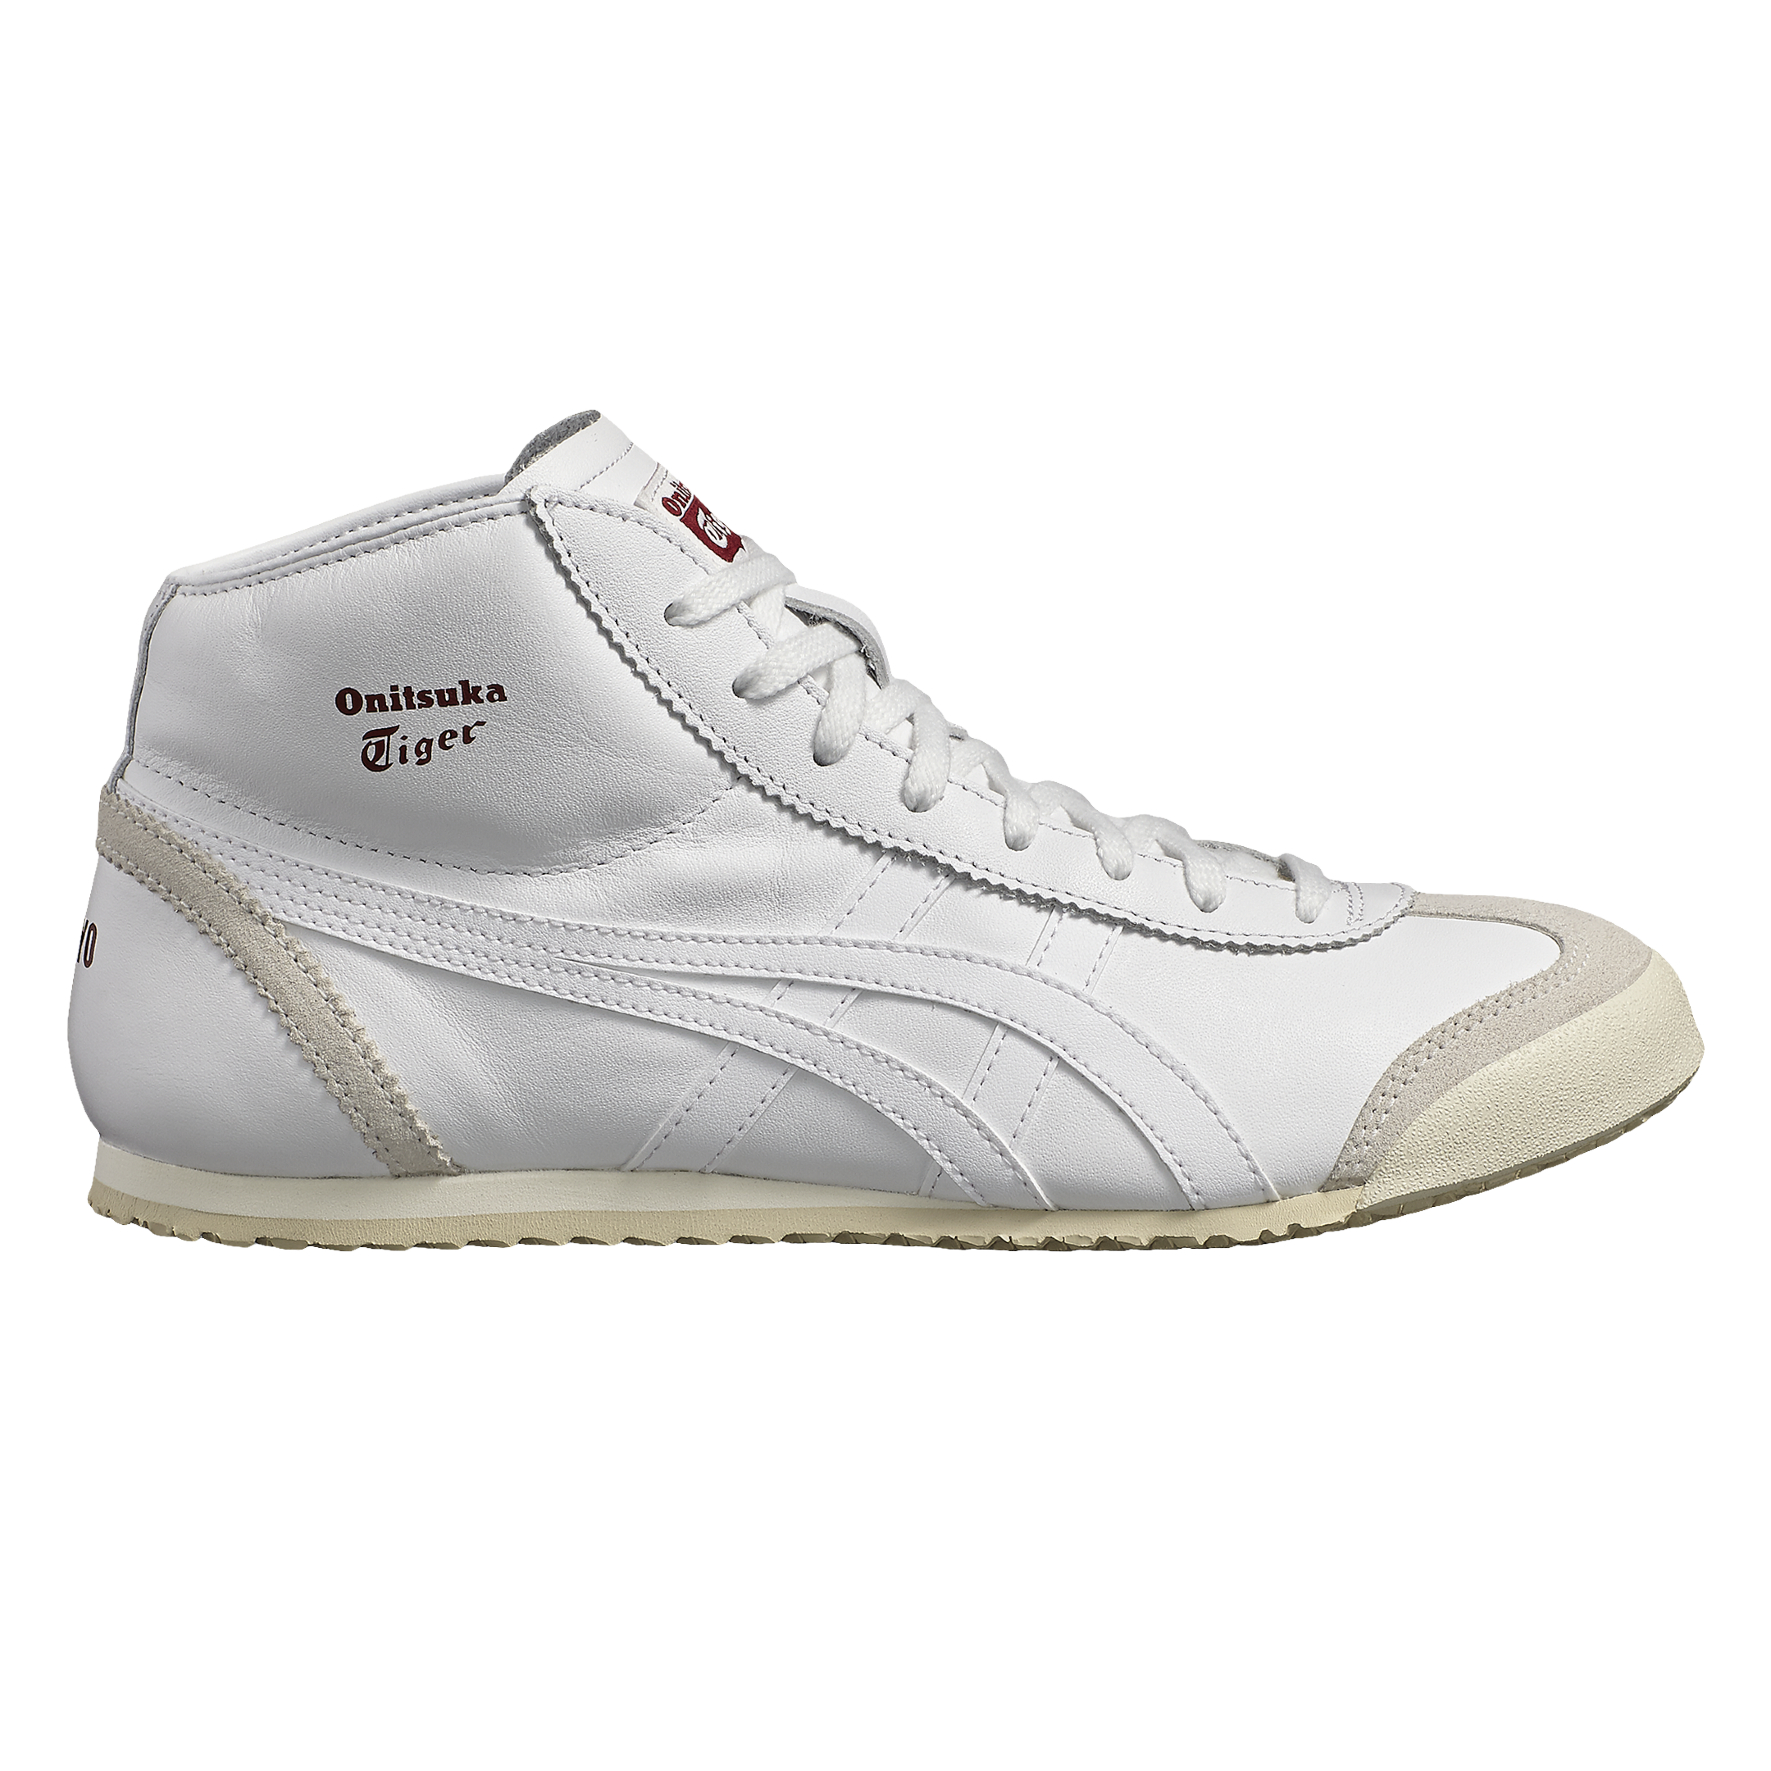 new product 2af08 dfb9f Onitsuka Tiger Mexico Mid Runner White / Birch — Eisdieler